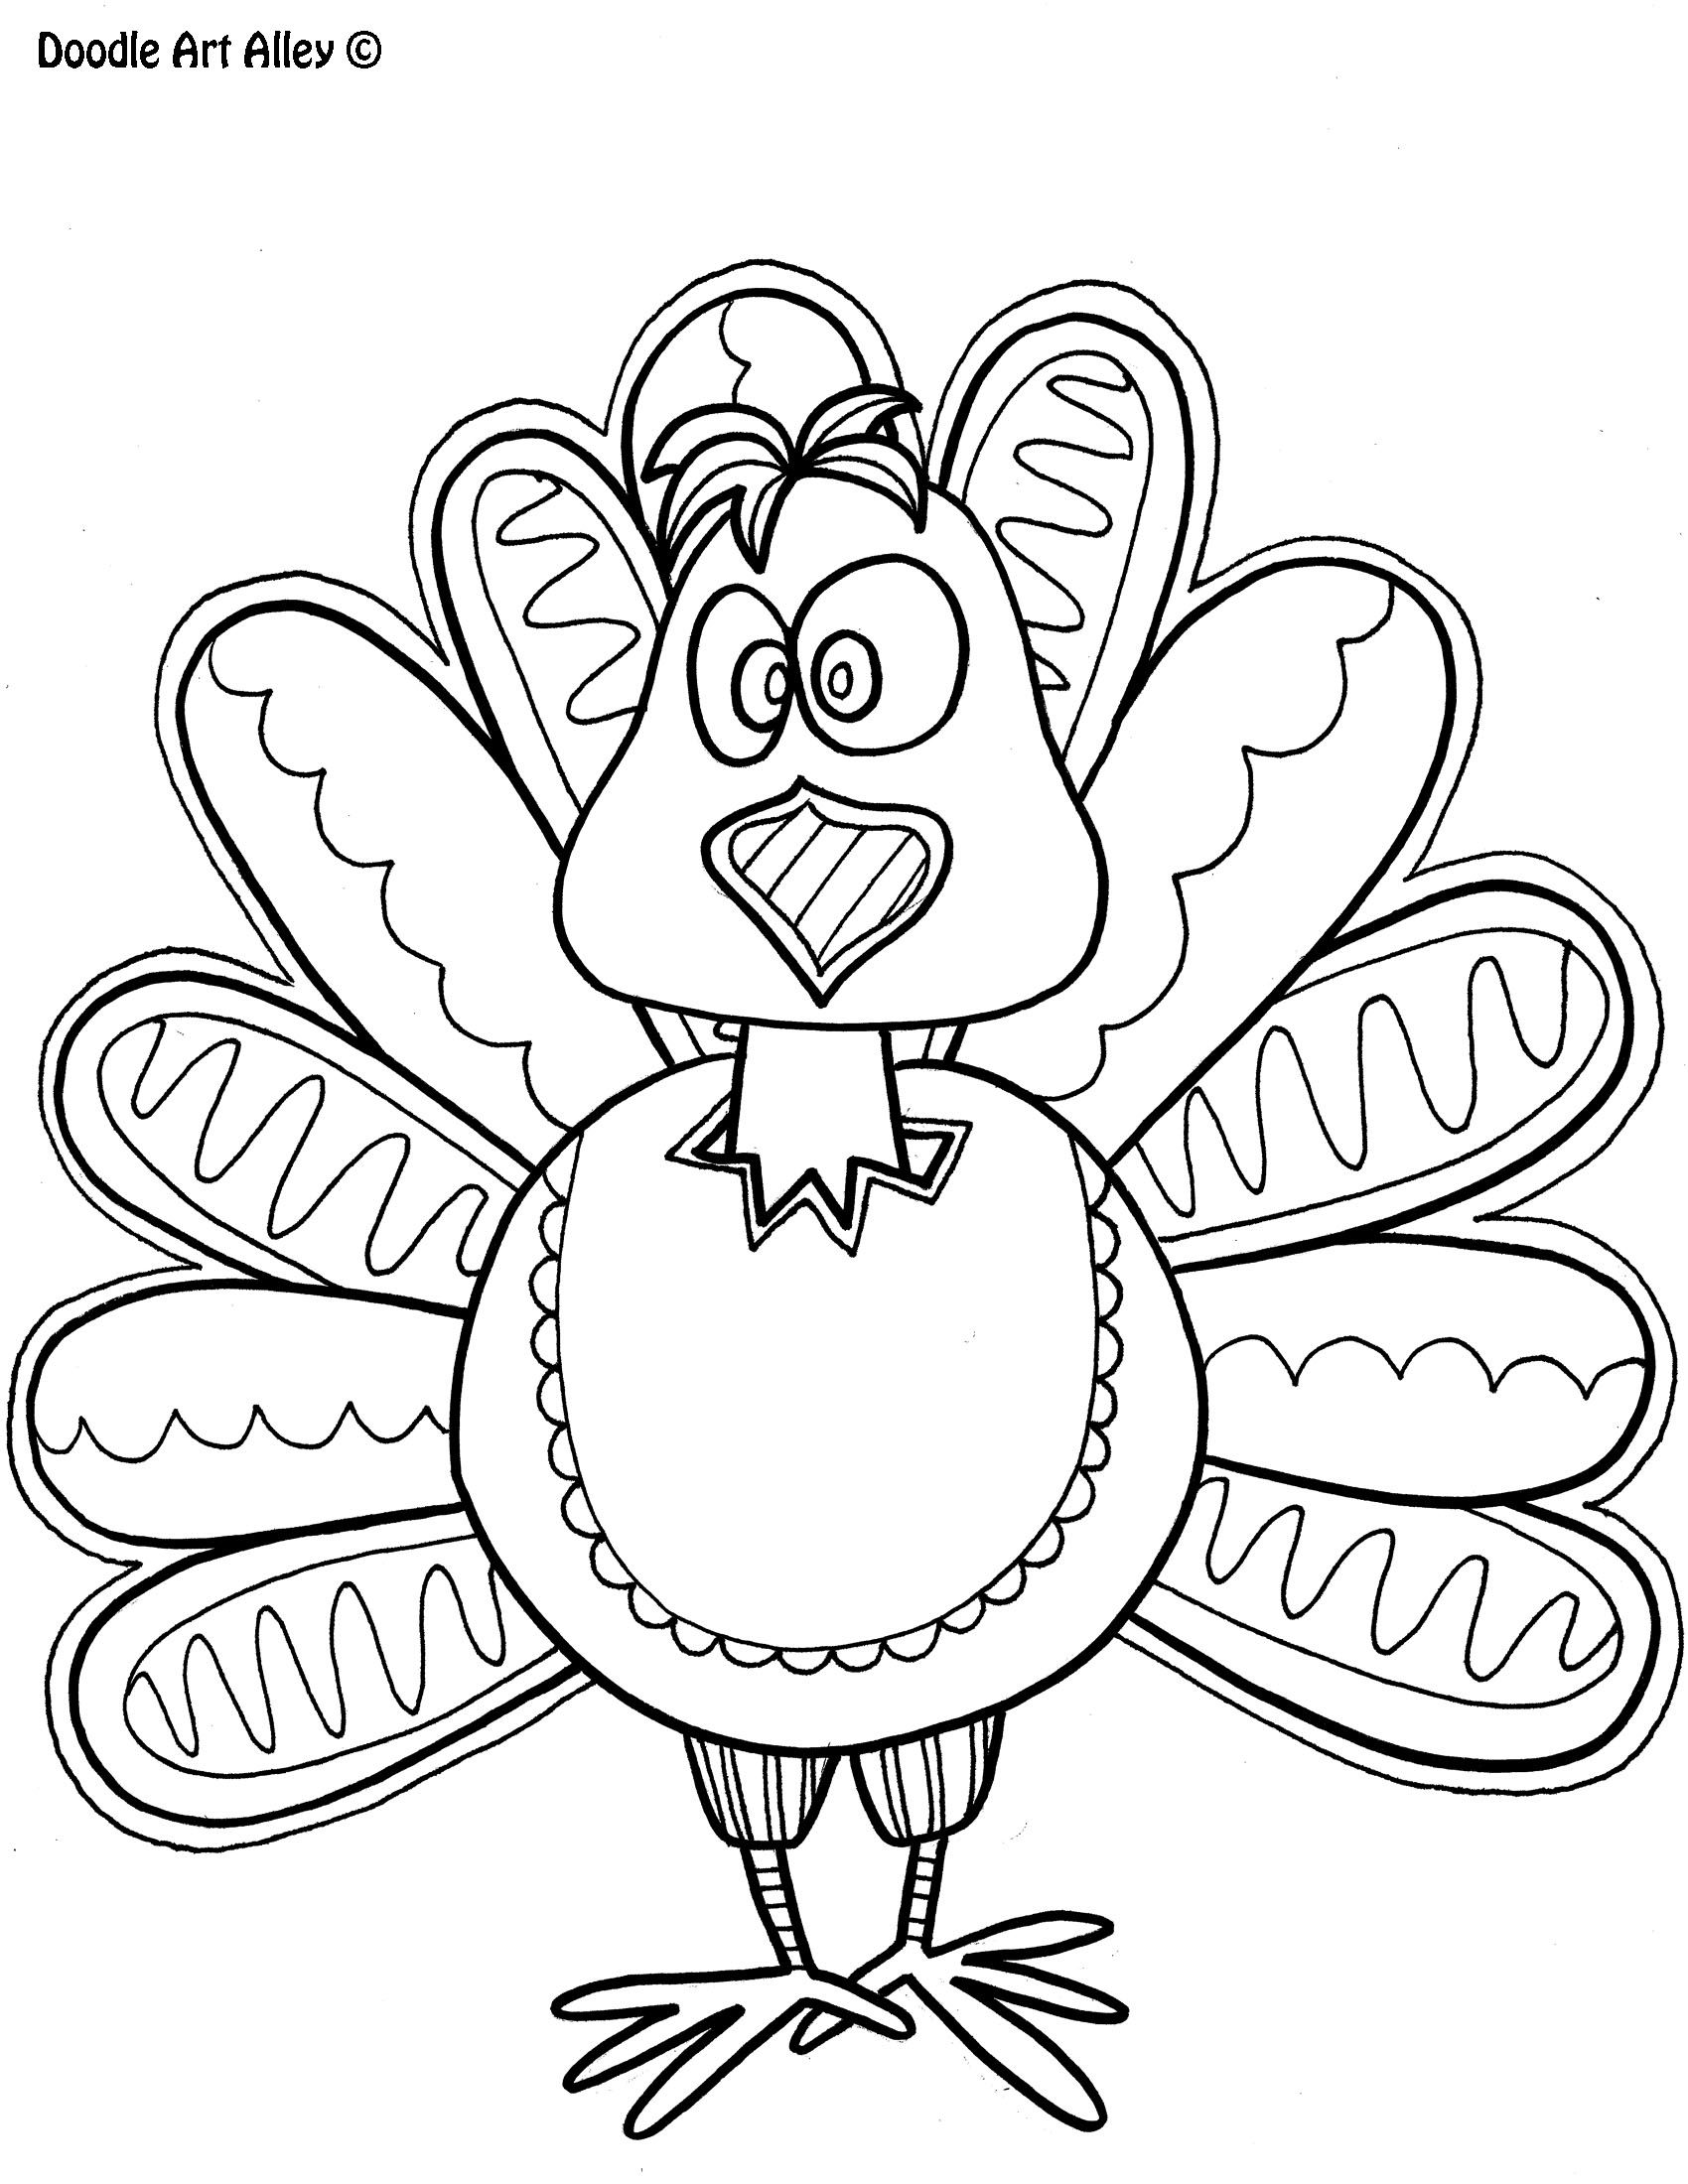 Pin de Maribeth Flannery en Coloring Pages | Pinterest